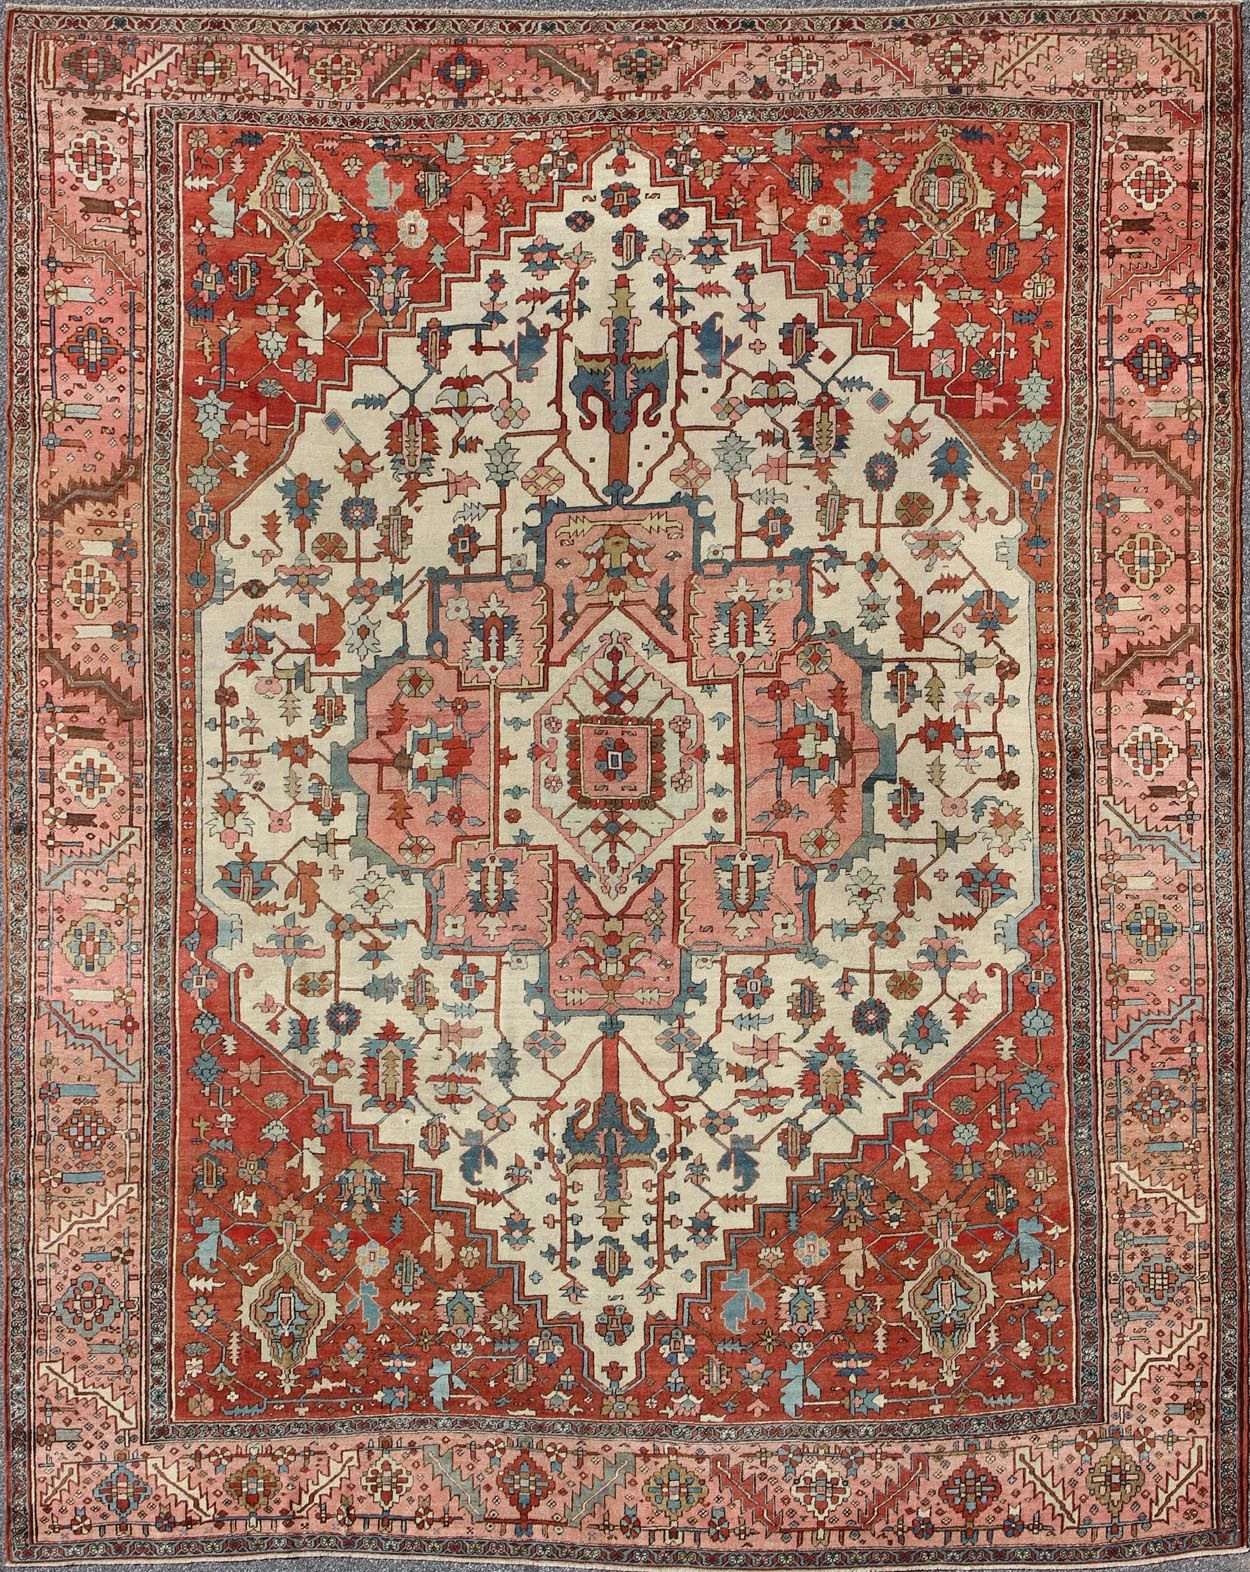 Antique Serapi Rug M14 0806 Serapi 8 8 X 12 0 Wool Medallion Pile Origin Iran Circa 1900 Rugs On Carpet Tribal Carpets Buying Carpet